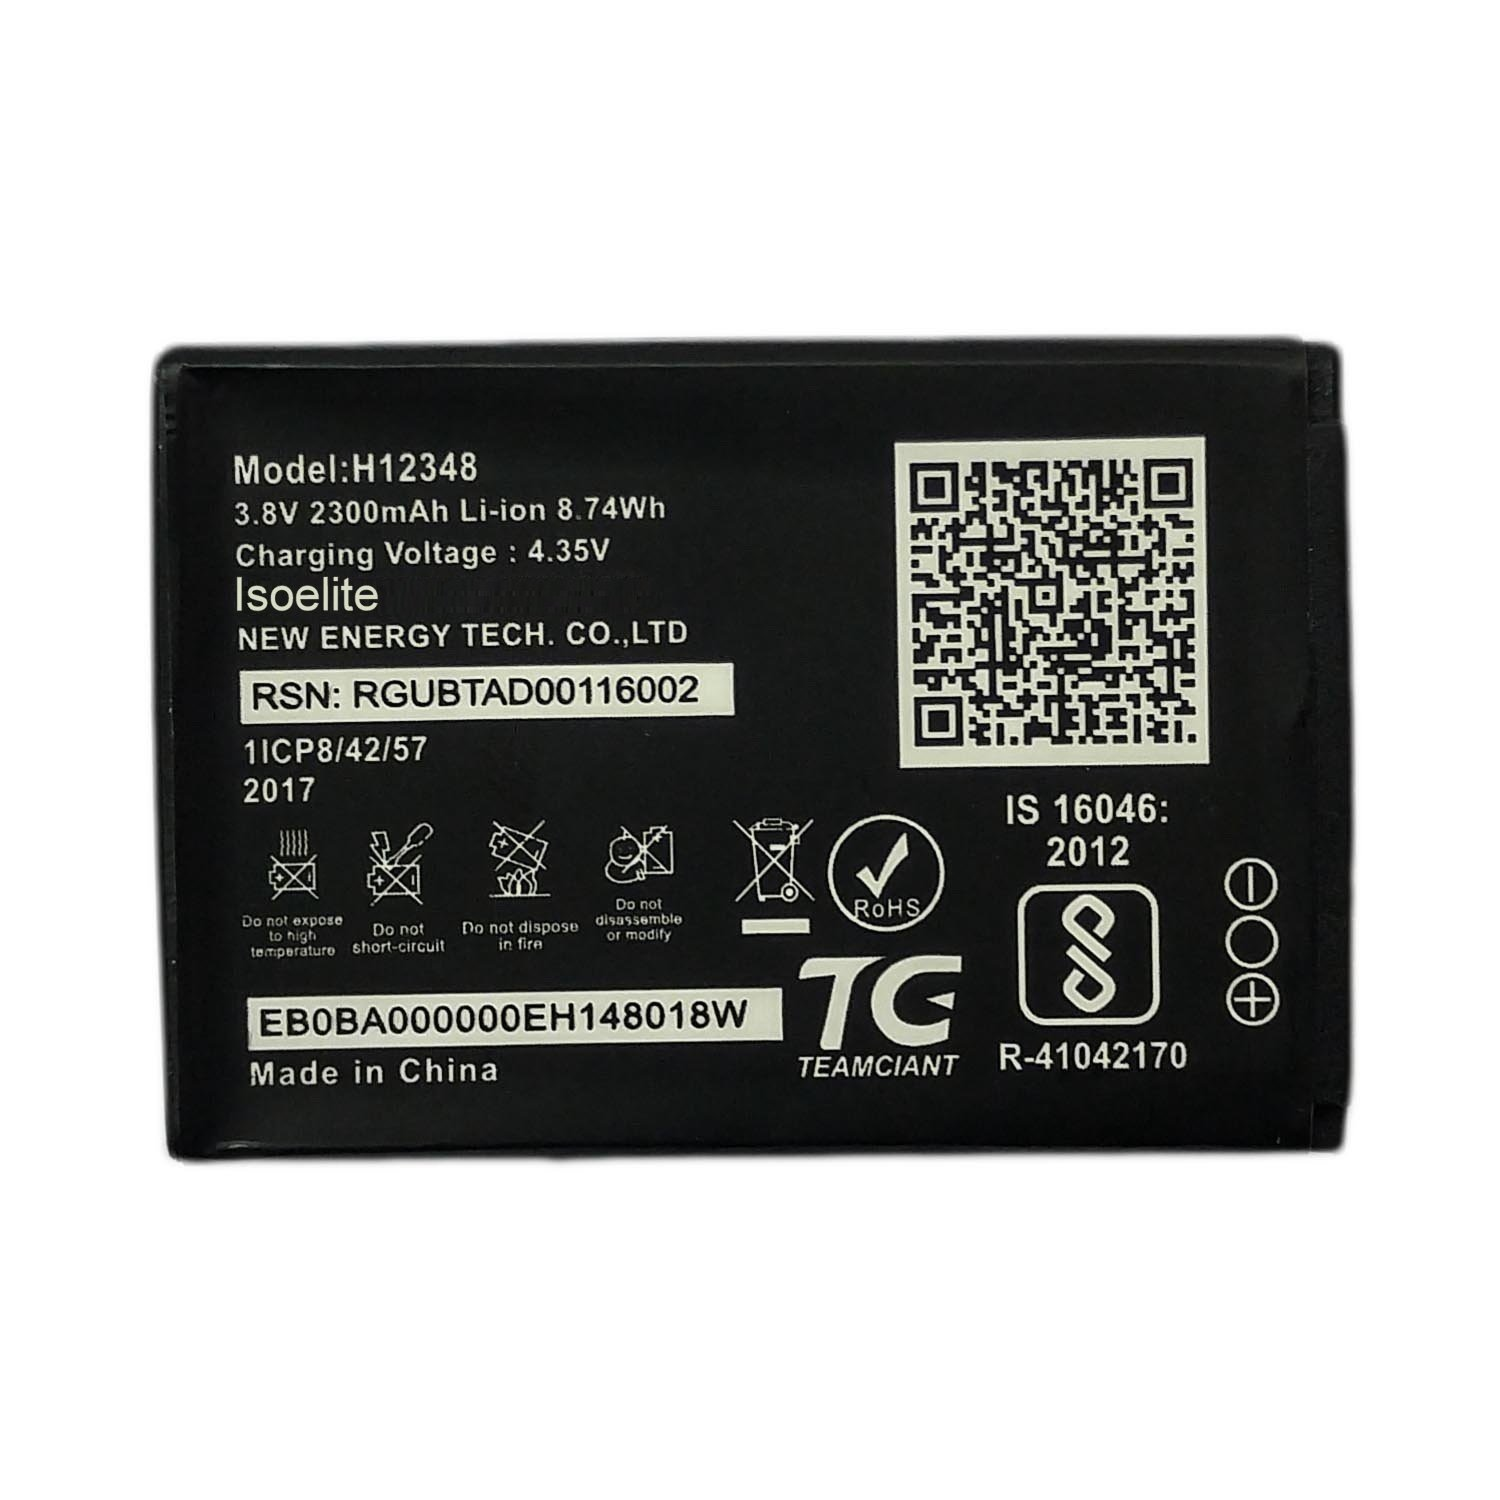 V3HMV Battery Compatible for JIO WiFi Dongle M2S JioFi 2 Wireless Router  (H12348) 2300 mAh Battery